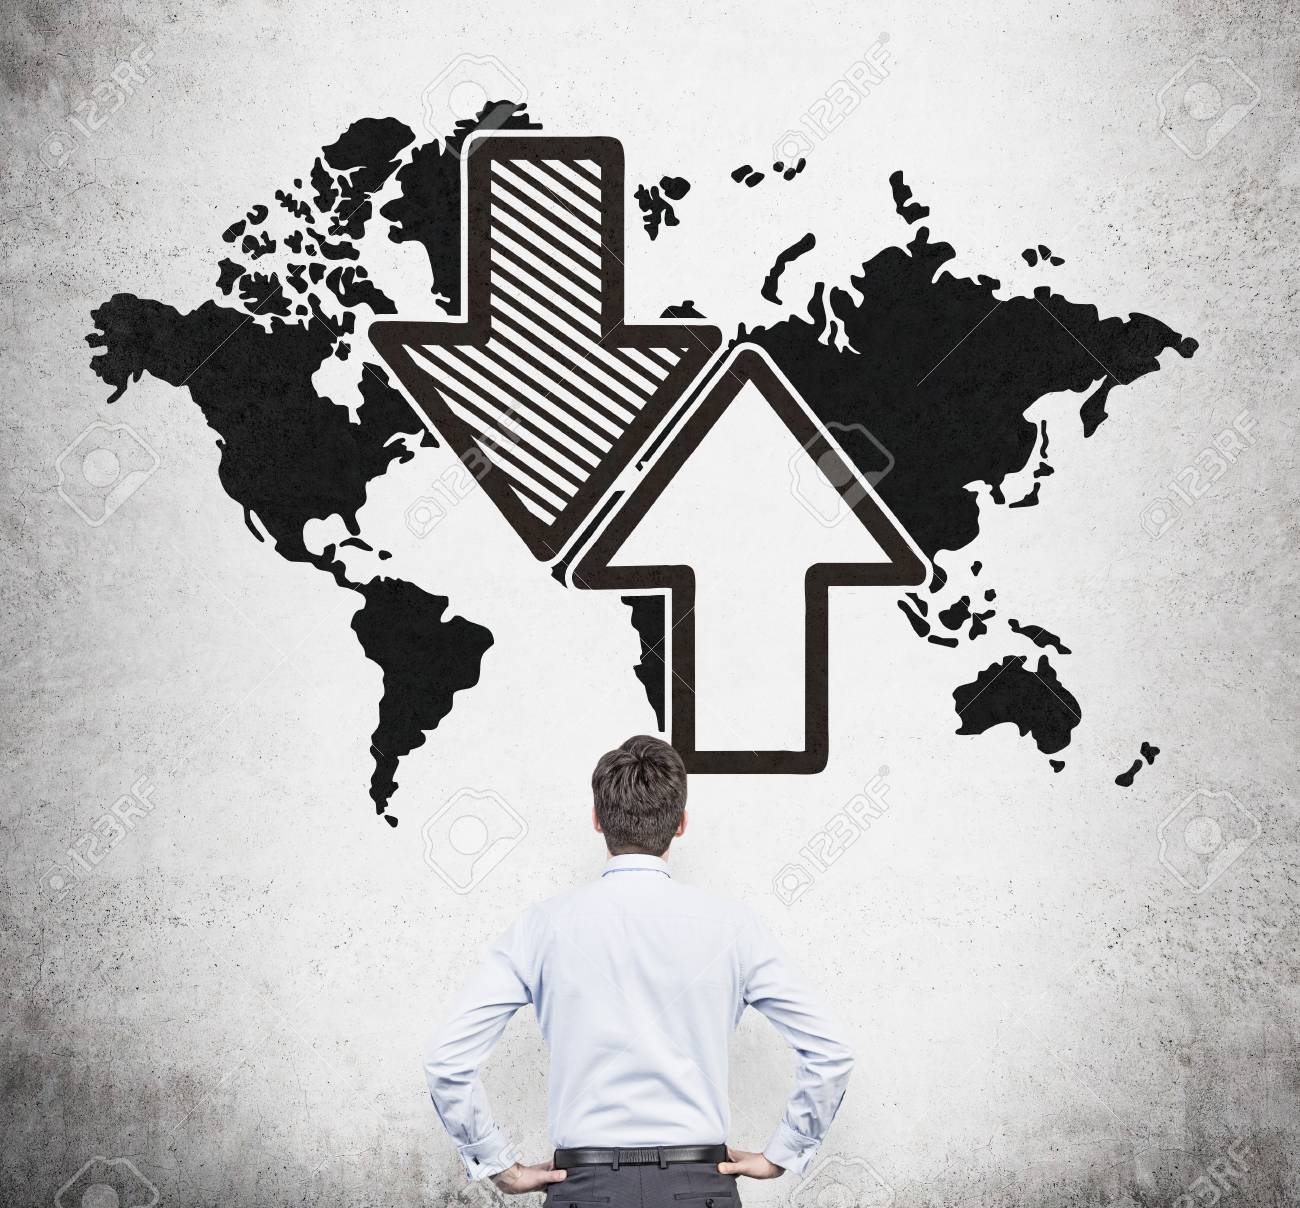 Businessman looking at drawing world map with arrow on gray wall businessman looking at drawing world map with arrow on gray wall stock photo 36741021 gumiabroncs Choice Image